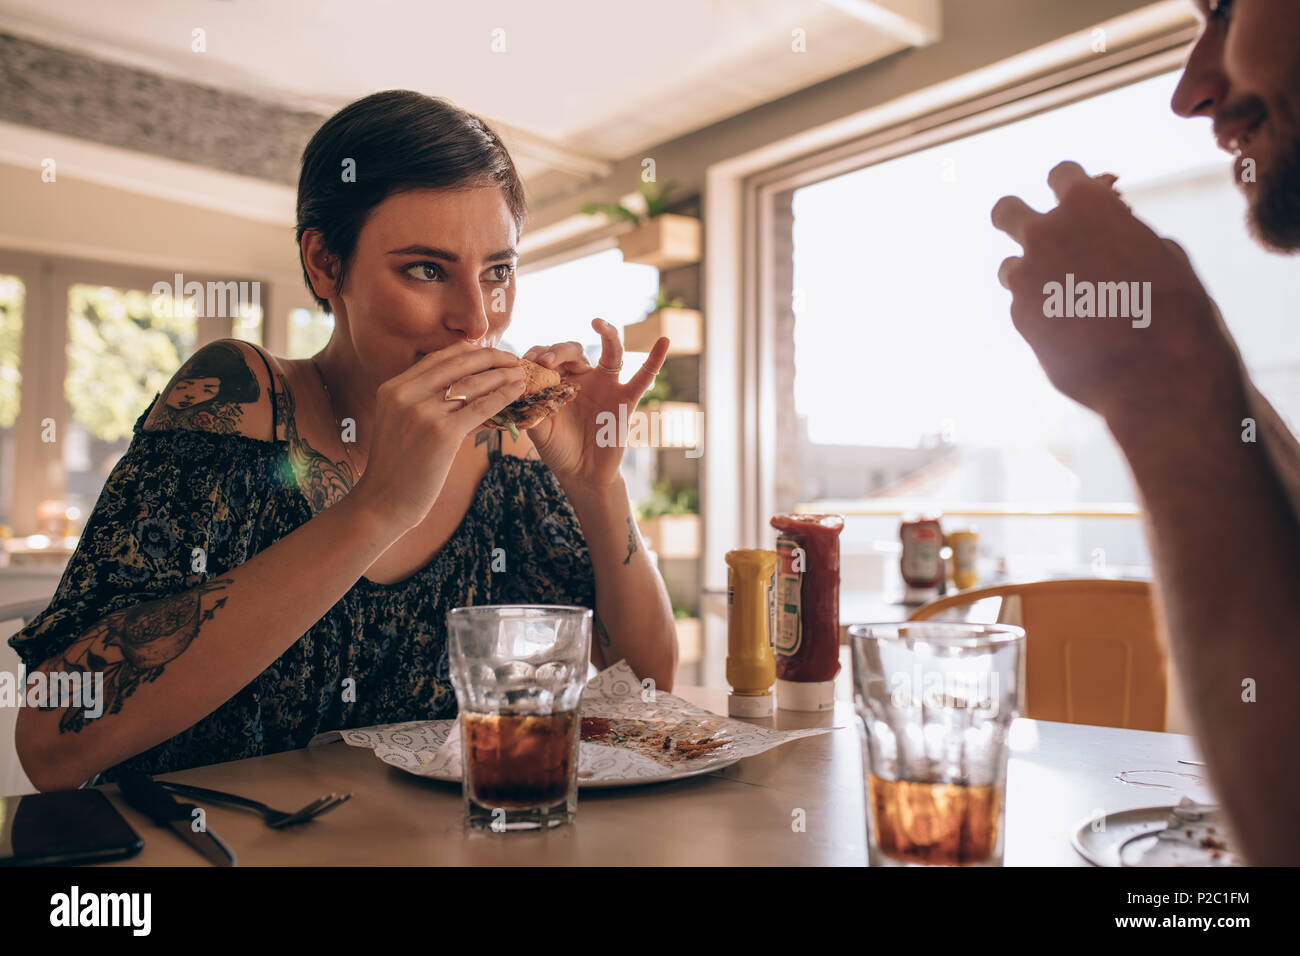 Young woman eating burger with her boyfriend sitting around the table at a restaurant. Couple having burger at cafe. - Stock Image